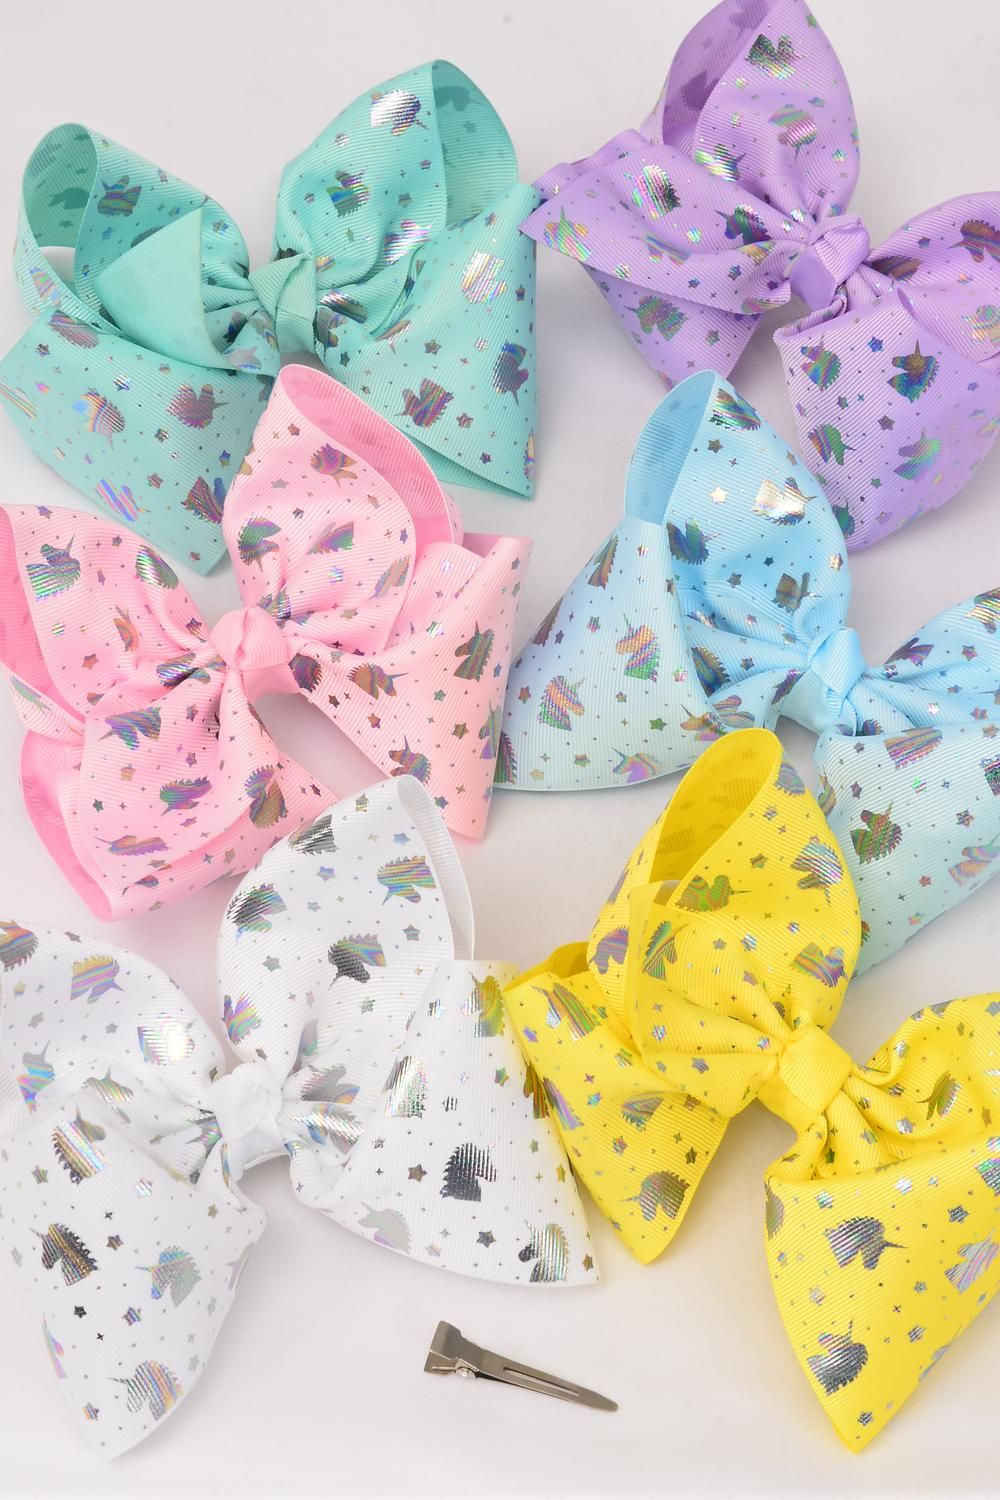 "Hair Bow Jumbo Cheer Type Bow Unicorn Alligator Clip  Grosgrain Bow-tie Pastel/DZ **Pastel** Size-8""x 7"" Wide,2 of each Color Asst,Alligator Clip,Clip Strip & UPC Code"